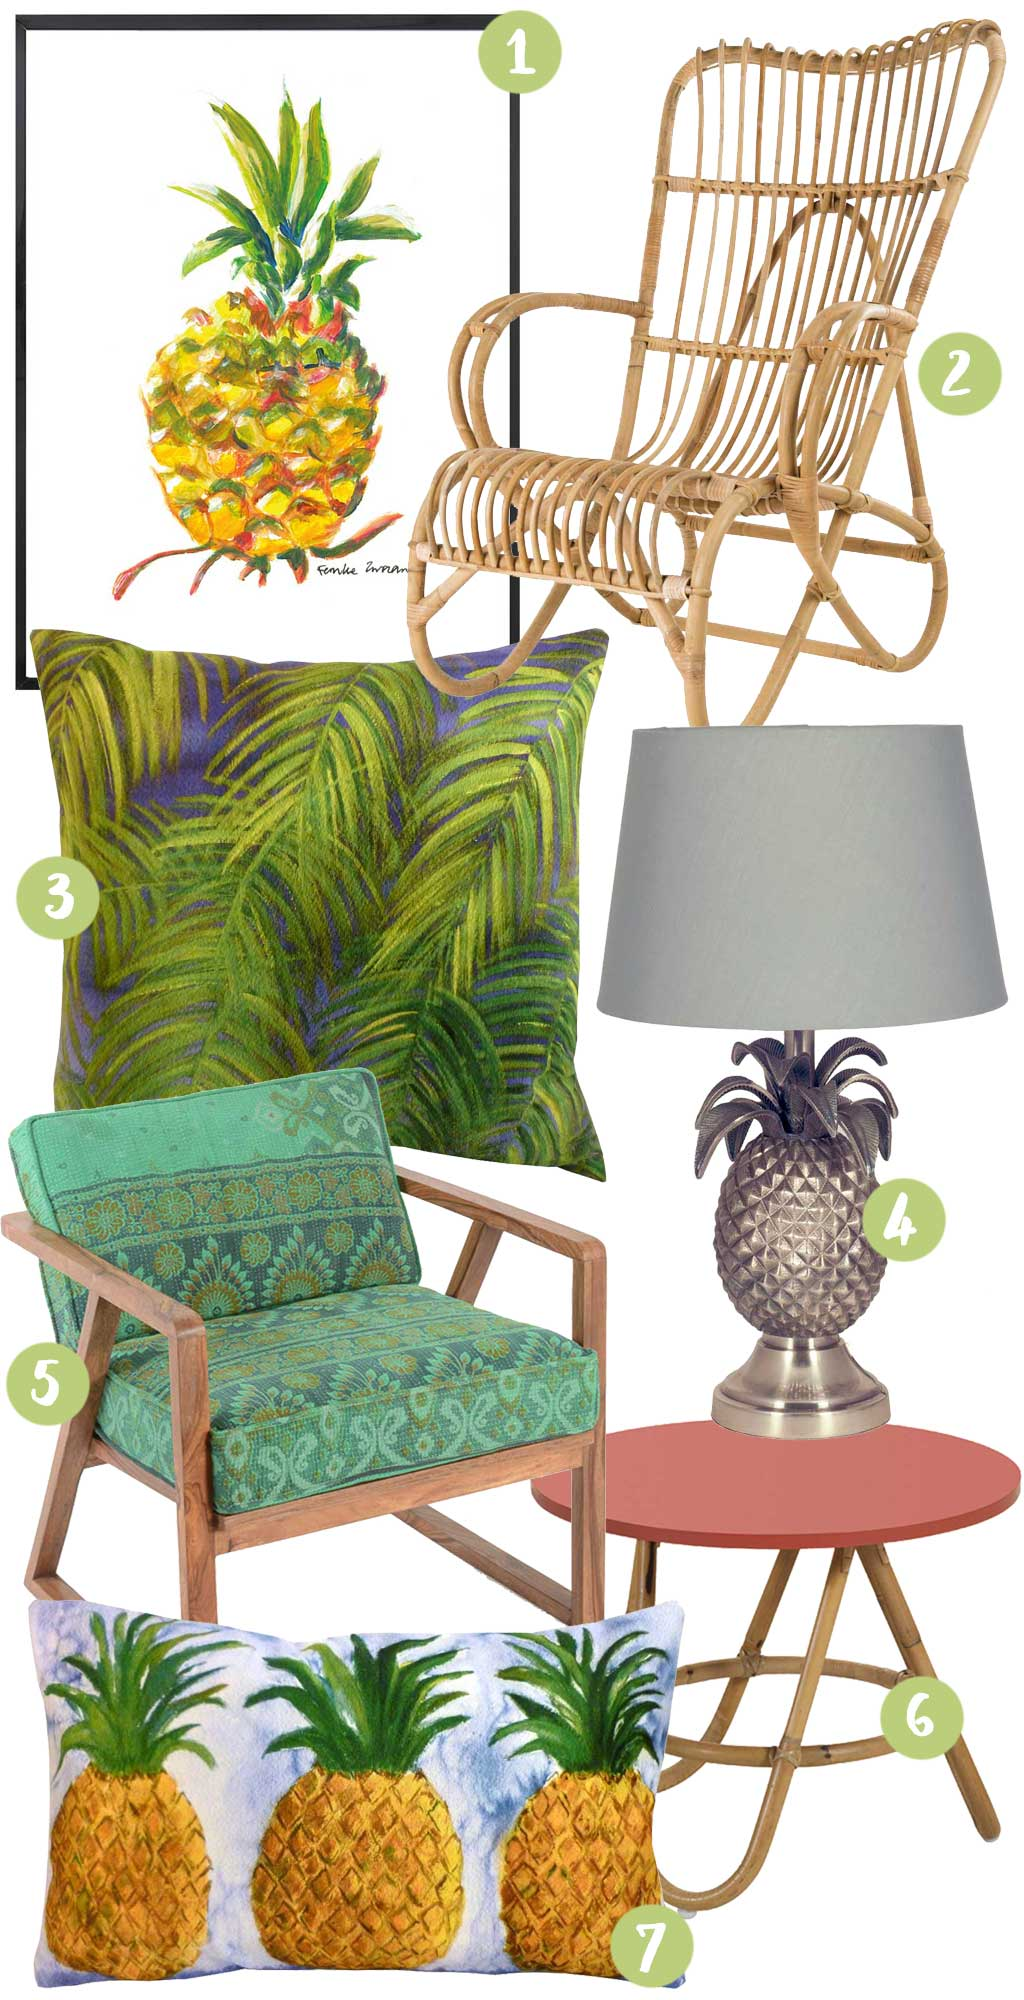 A Tropical Home's Essentials - The Shopping List - Hutsly Blog